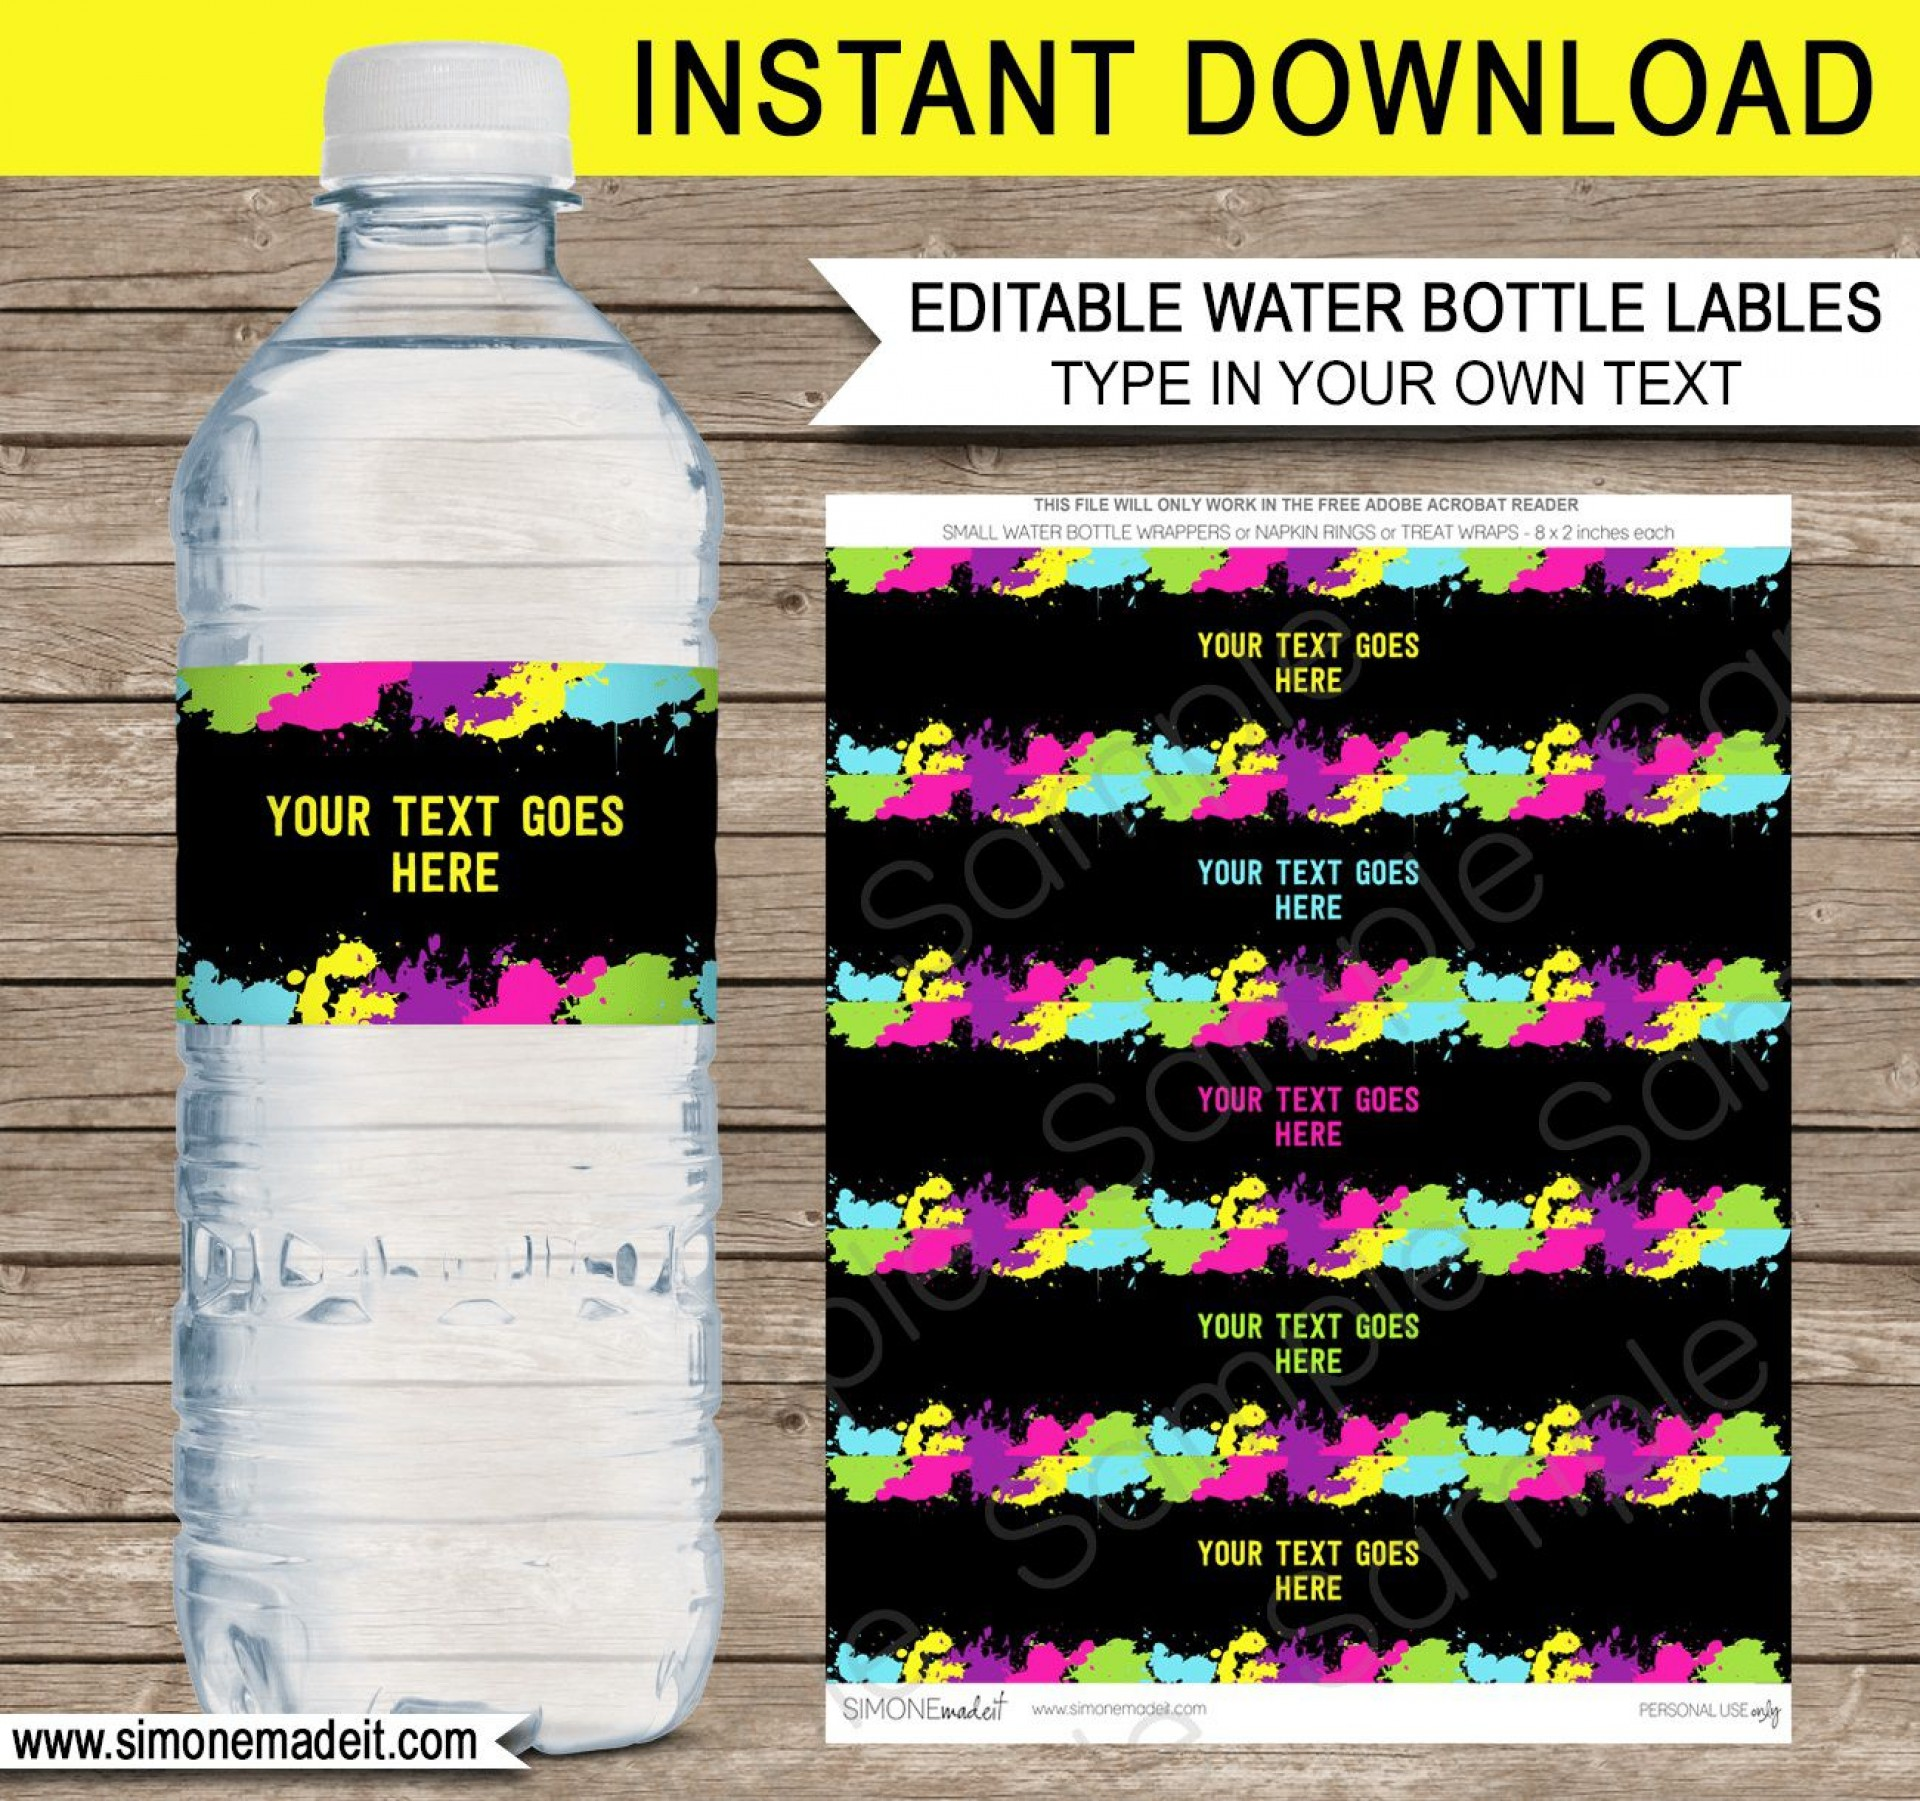 005 Remarkable Water Bottle Label Template Image  Free Photoshop Baby Shower Psd1920